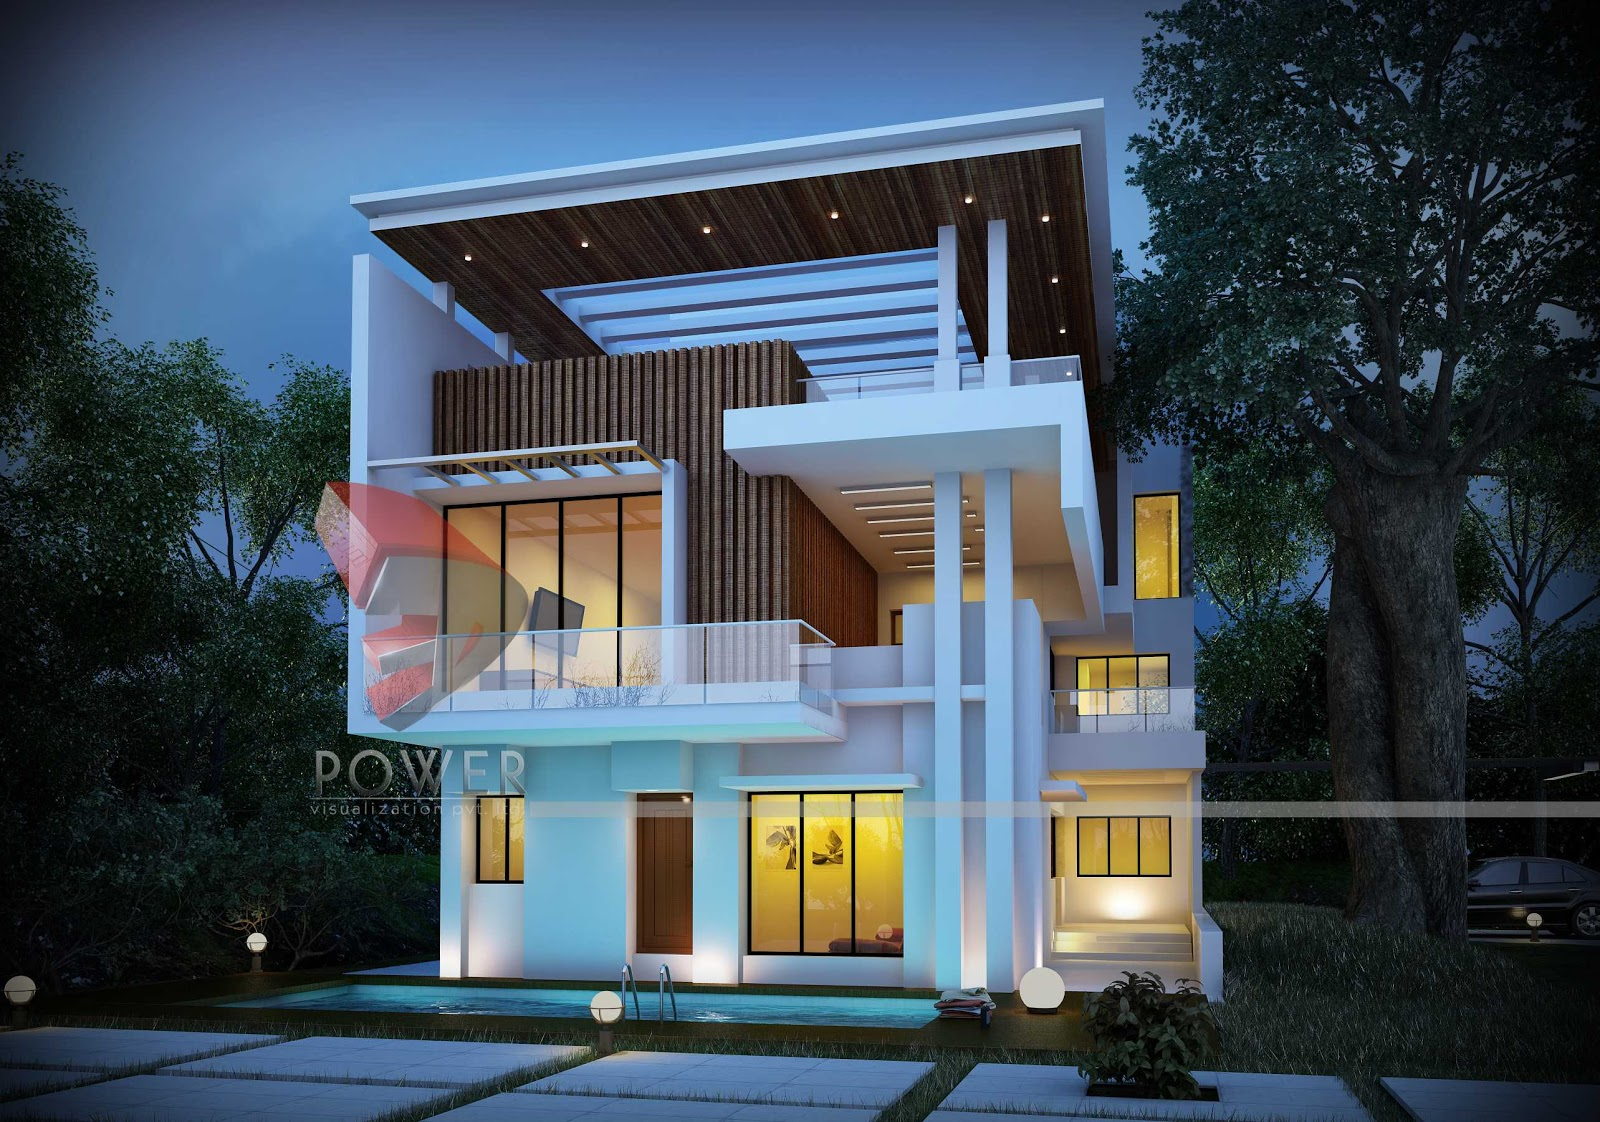 Ultra modern home designs home designs october 2012 for Super modern house design